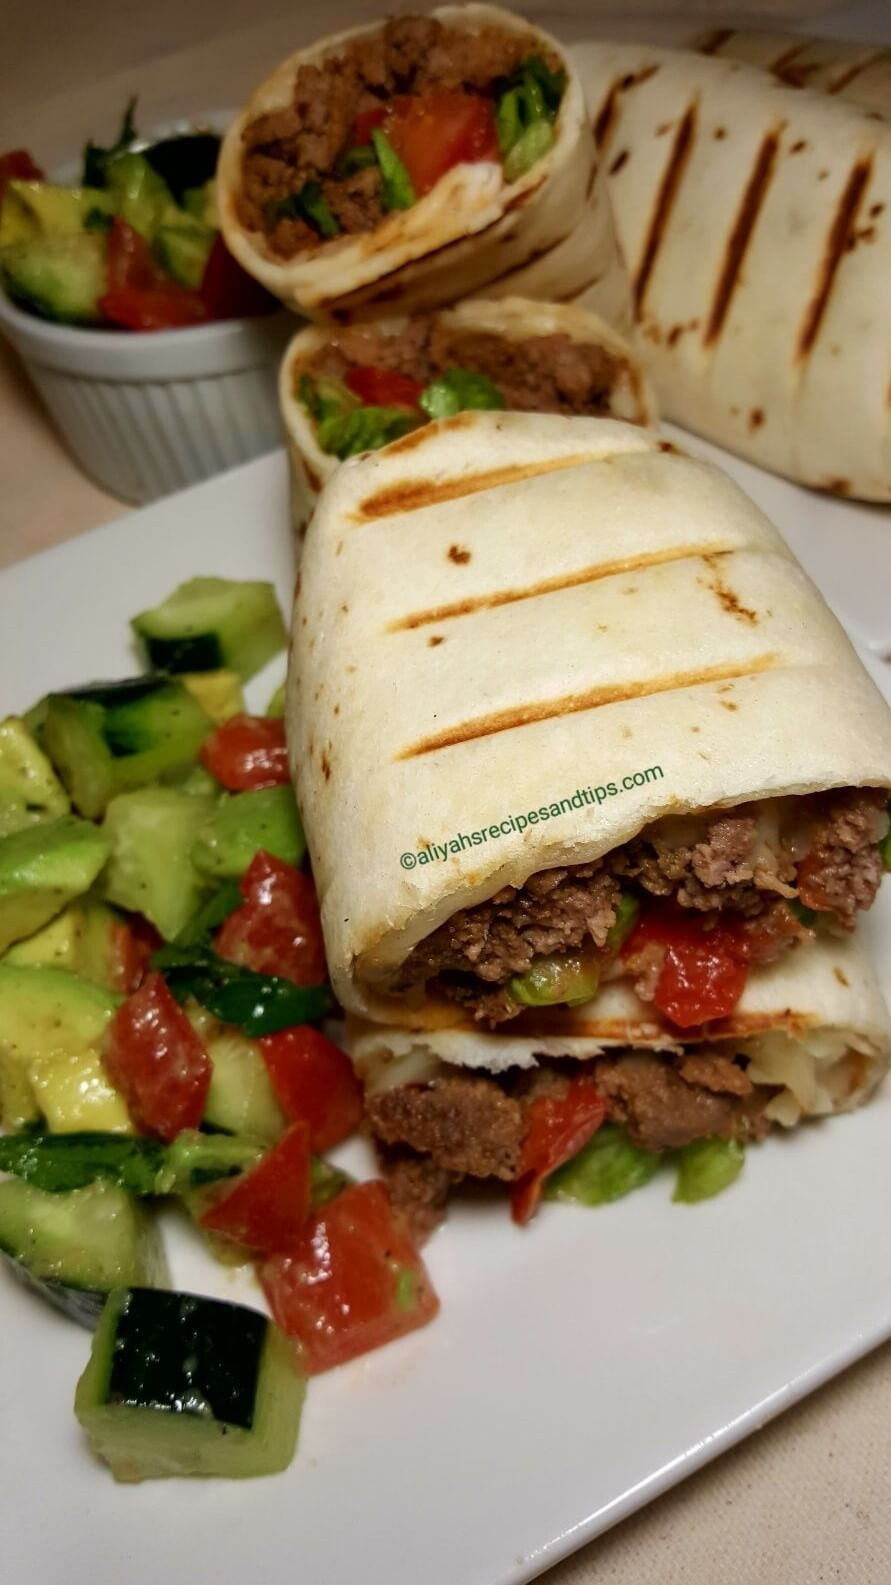 cheeseburger wrap, grill, burger, ground beef, turkey beef, chicken patty, bacon wrap, mince, fried, burrito, beef taco, lettuce, bacon wrapped, vegetable, cheeseburger wrap, grilled cheeseburger wraps, cheeseburger wrap recipe, bacon cheeseburger wraps, cheeseburger